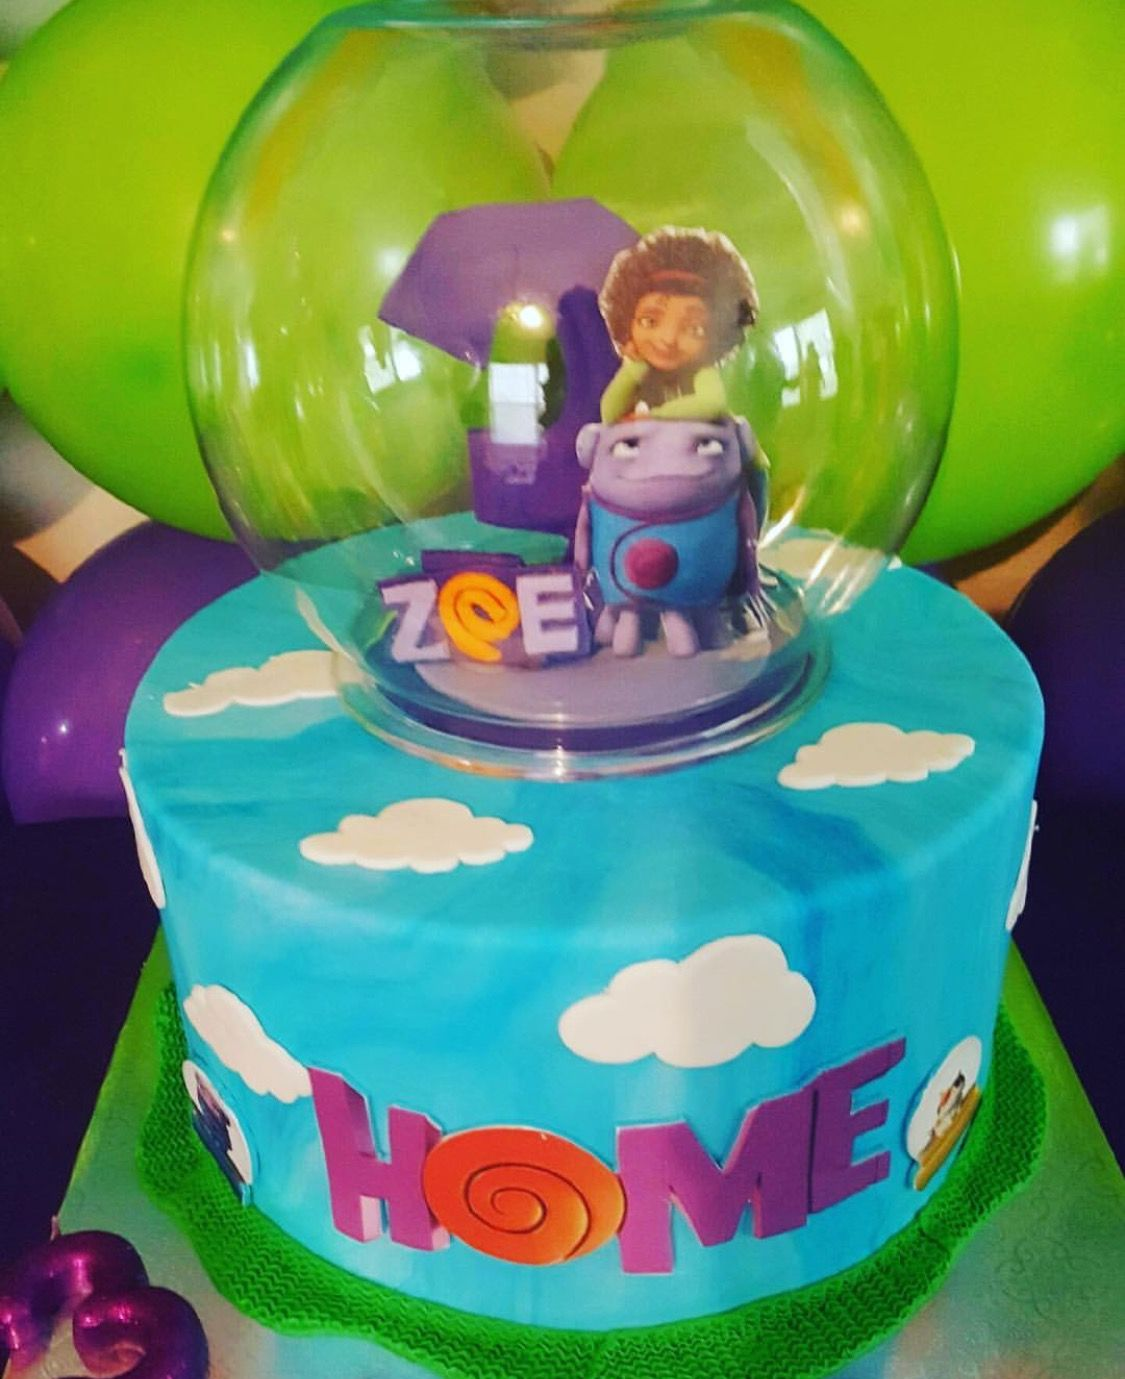 Dreamworks Home Boov Party Home Cake Dreamworks Home Party